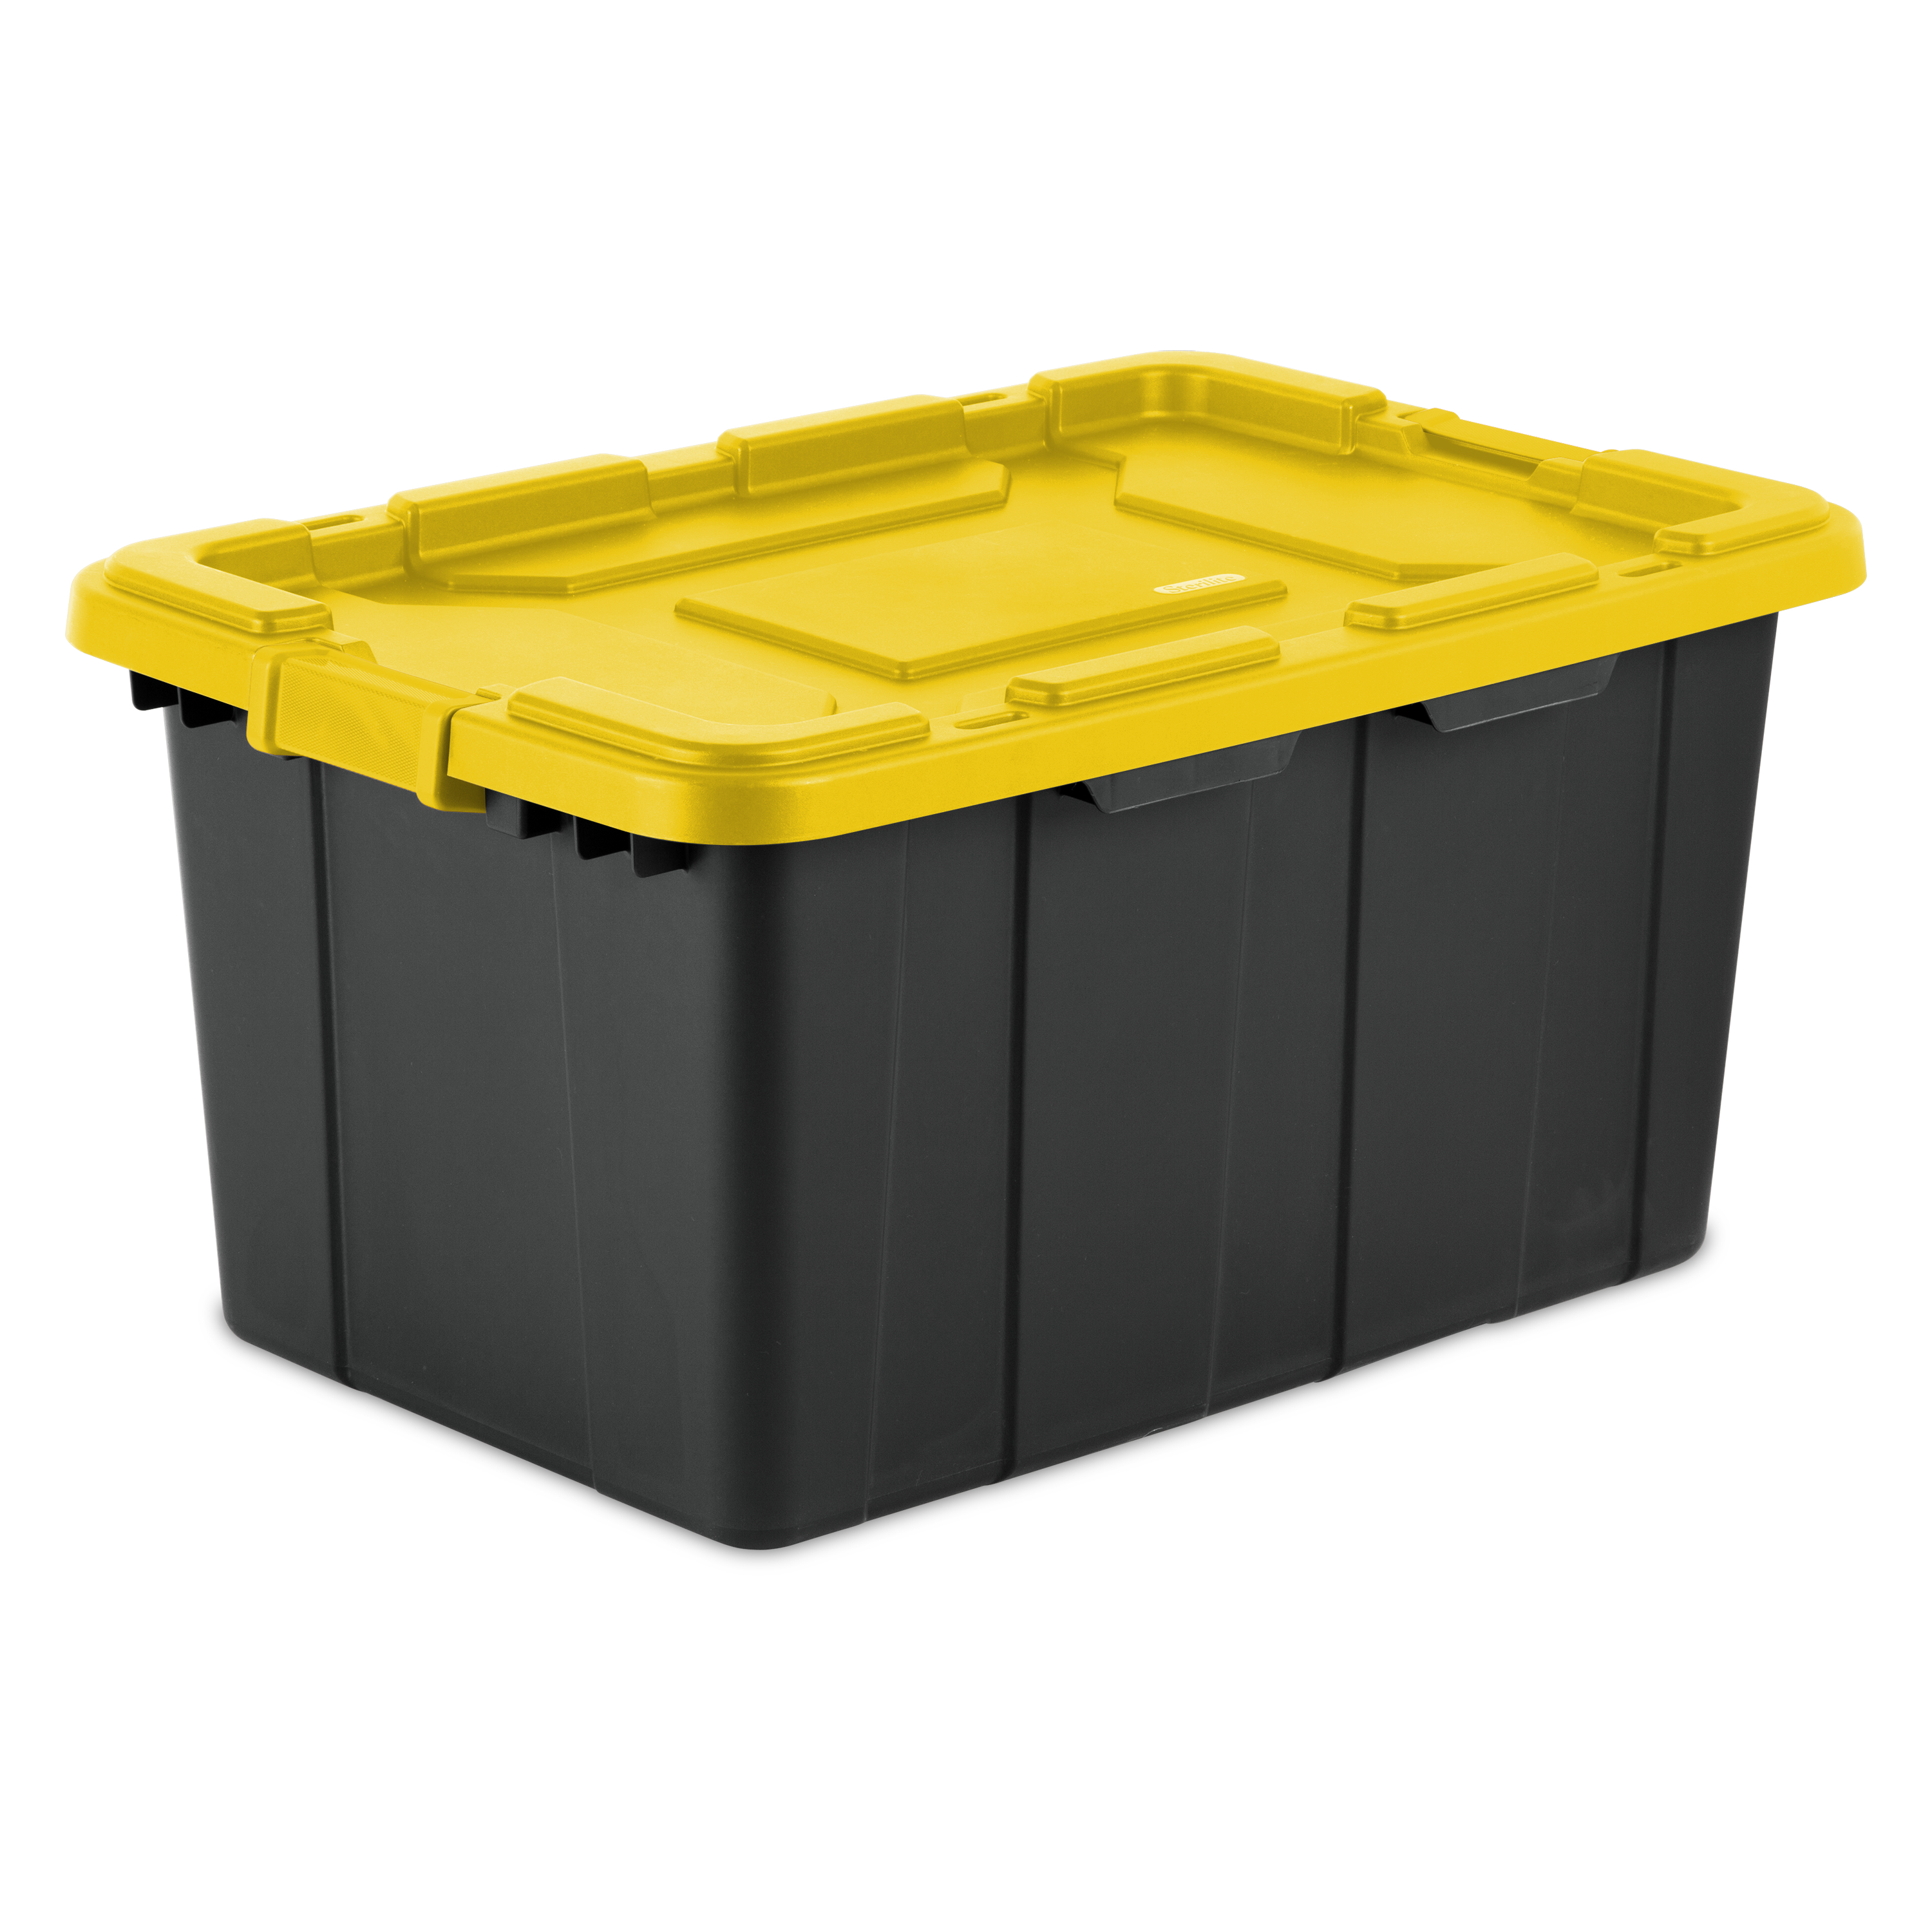 Sterilite, 27 Gal./102 L Industrial Tote, Yellow Lily